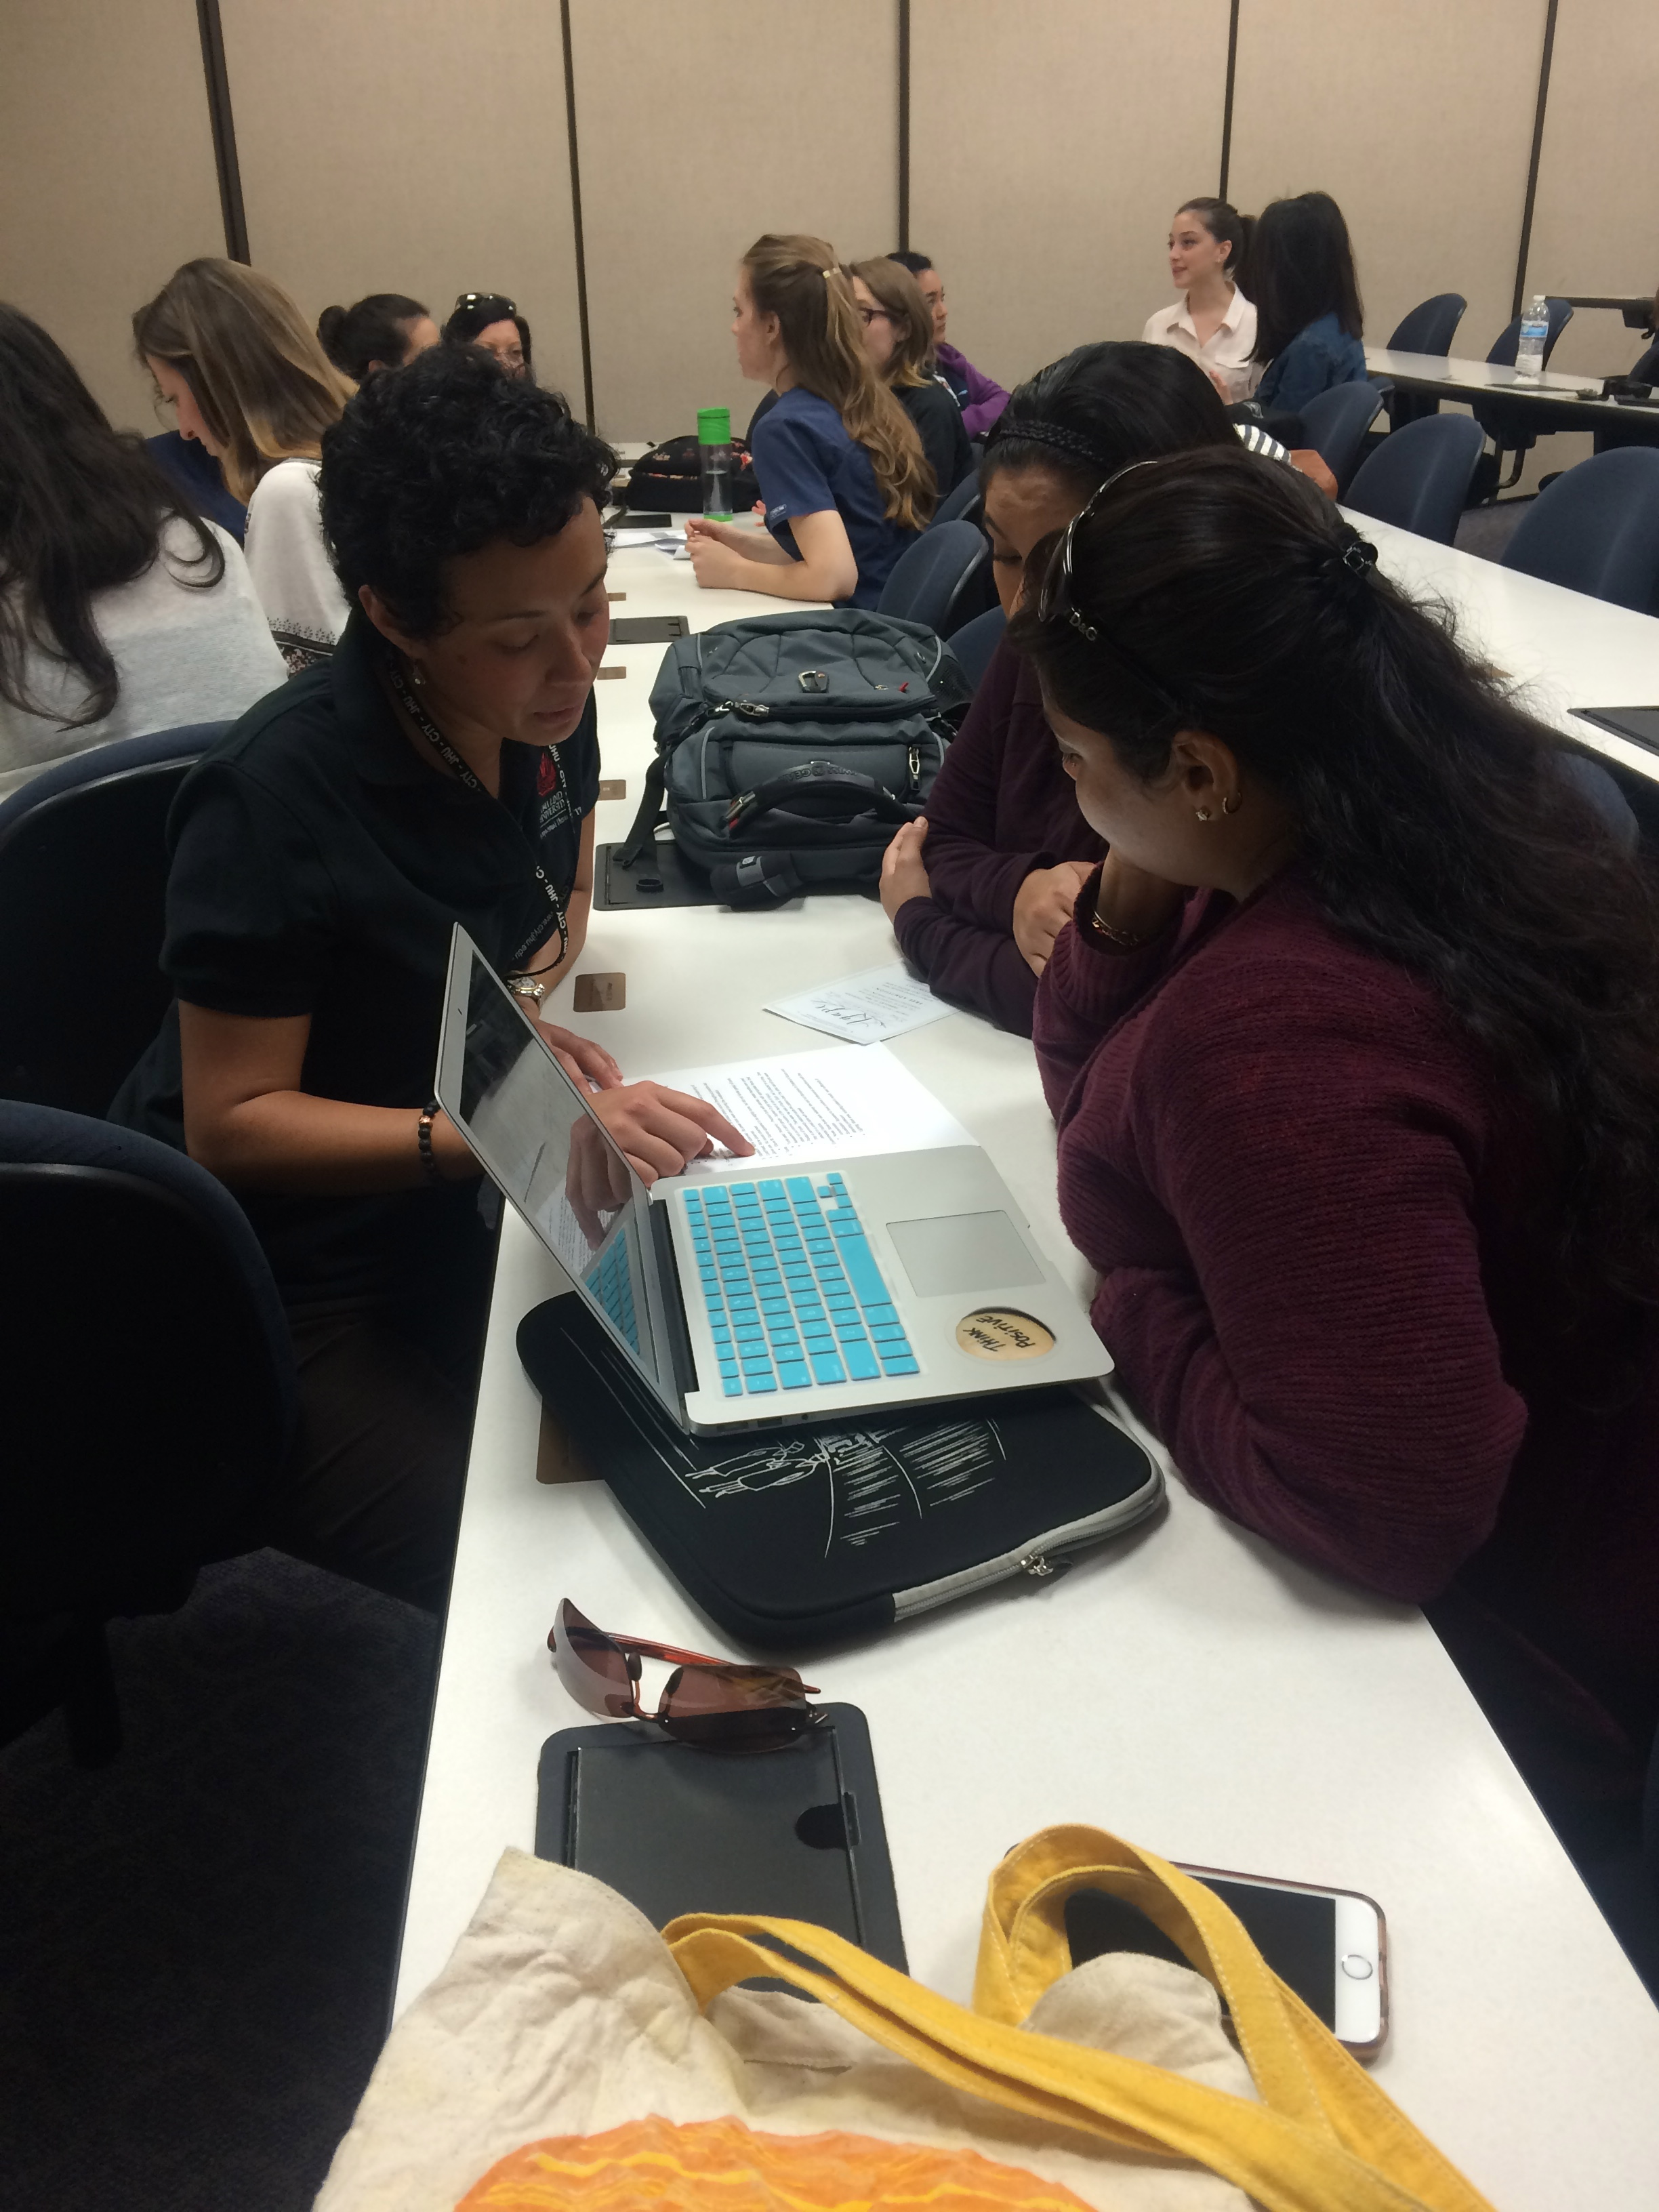 Interprofessional Education Between Occupational Therapy And Dental Hygiene At Loma Linda